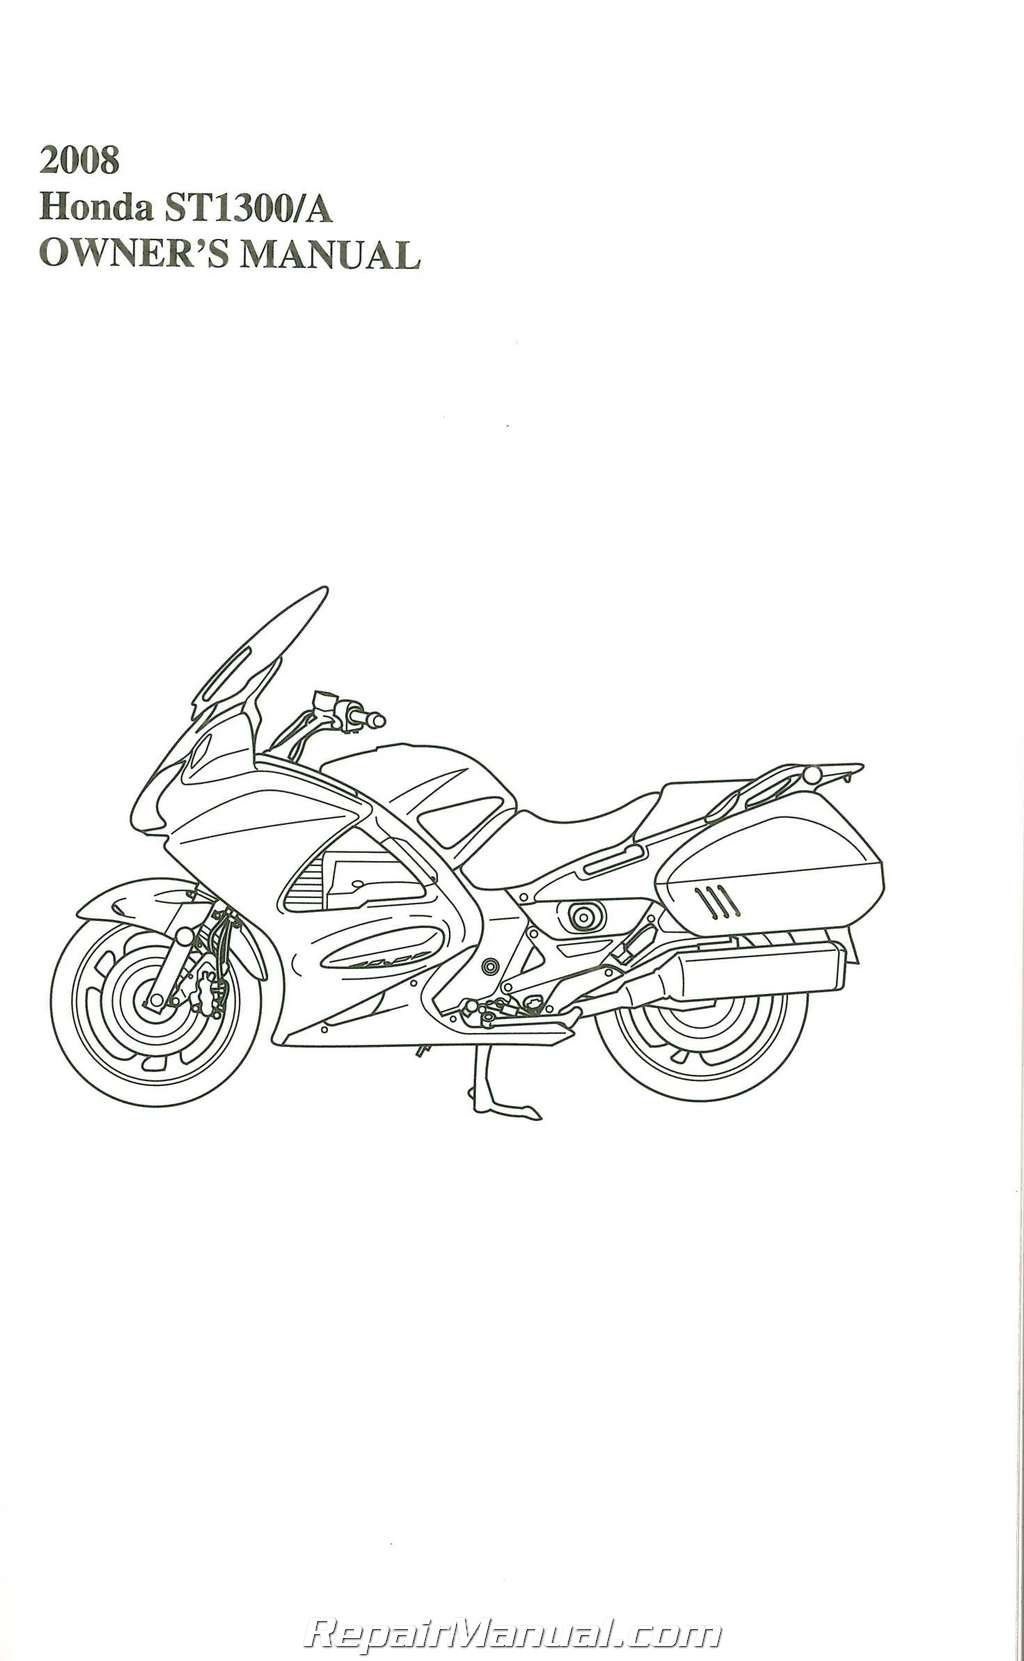 2008 Honda ST1300 A Motorcycle Owners Manual